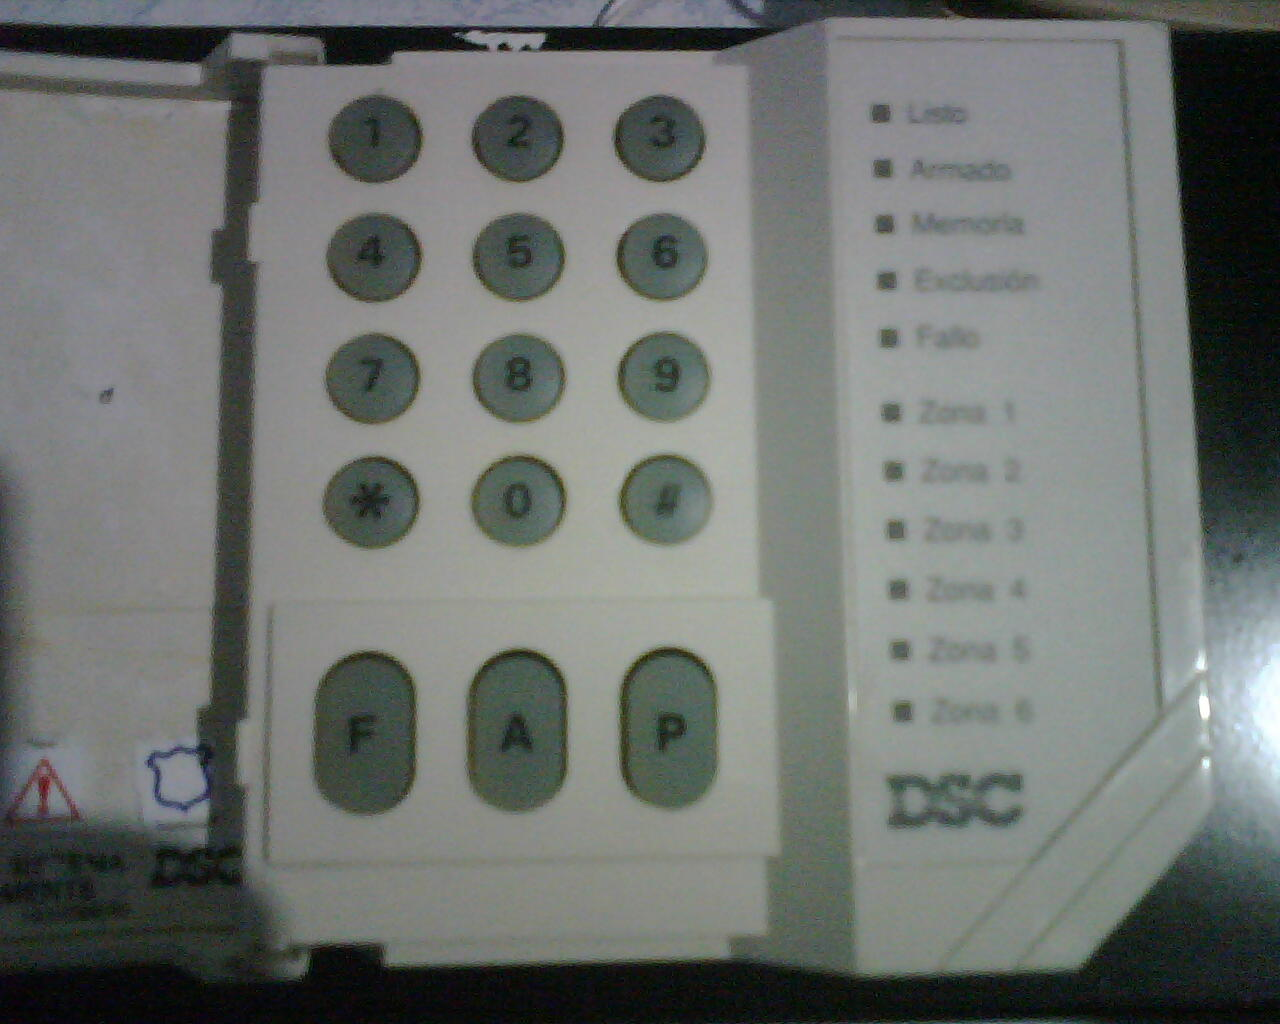 dsc 1550 wiring diagram data cable pc1500 pc link library